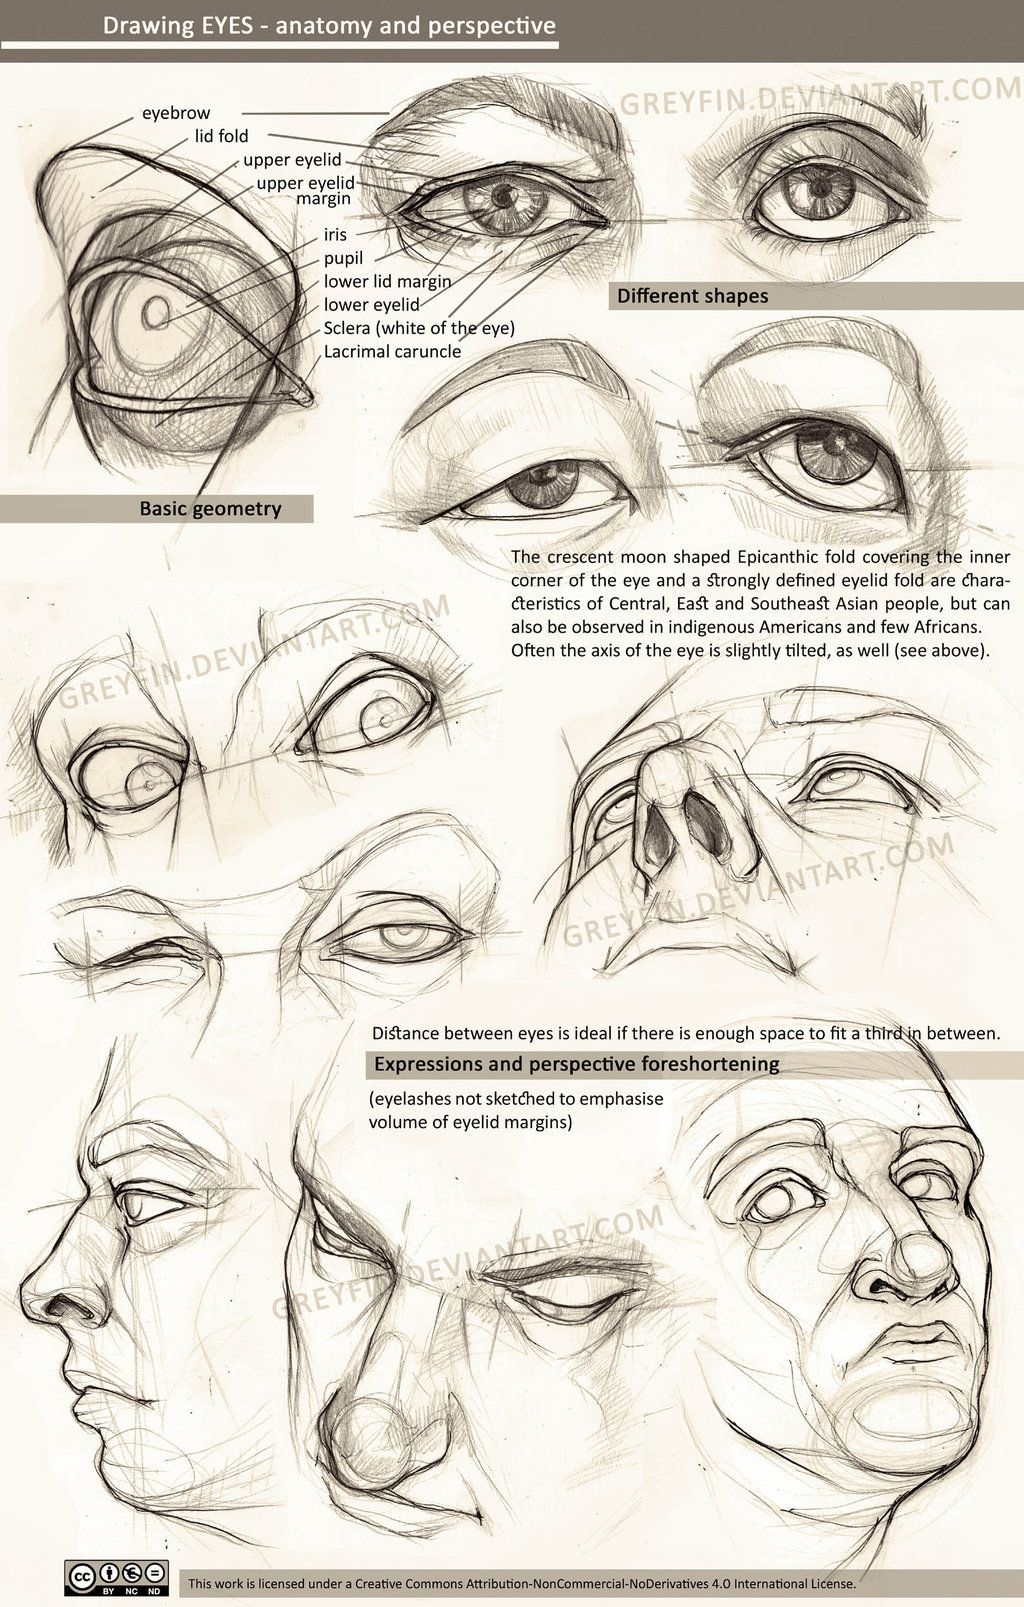 hight resolution of drawing eyes anatomy and perspective by greyfin